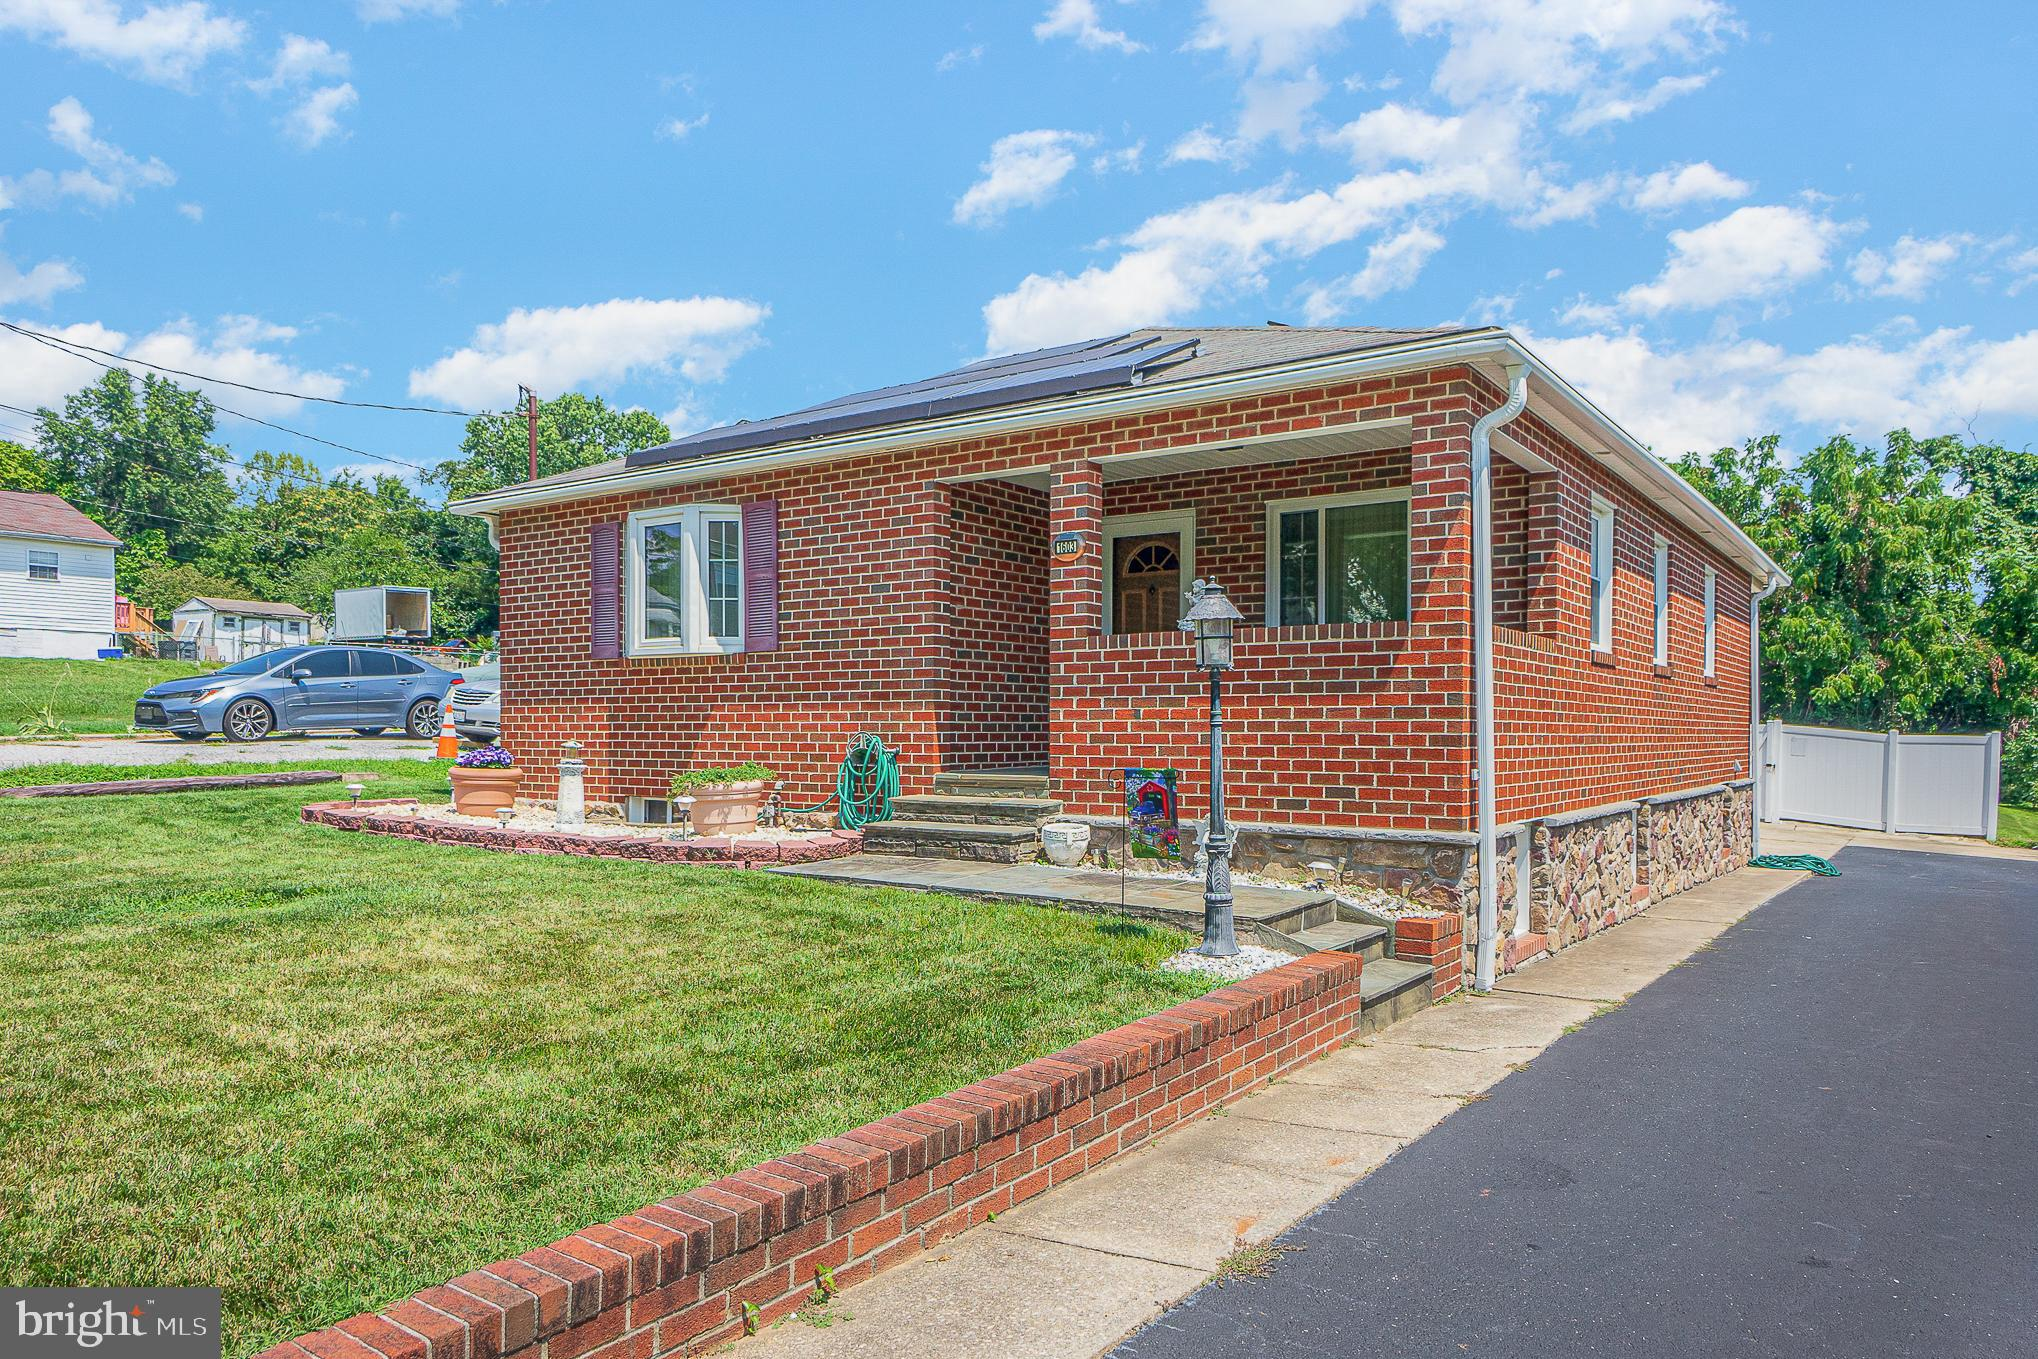 """***Back on the market***  and priced to sell!!!    Come see this meticulously maintained and updated, 3 bedroom, 3 full bath rancher with a basement.   The main floor has 3 bedrooms, 2 full baths and formal living and dining rooms.  The dining room has the infrastructure to move the kitchen to the first floor or you could convert it to a multi unit rental by installing an additional kitchen.   The basement is accessible with a chair lift outside as well as a stairlift inside.  The basement, with natural light throughout has a large family room, eat in kitchen, a large """"bonus"""" room, and ample storage in the laundry/utility room.  Most appliances, the hot water heater and both the heating and air conditioning systems are less than 5 years old.  The basement is dry having been water proofed with multiple sump pumps.   Additional highlights are the level lot, large concrete swimming pool, Leafguard gutters, 2 car garage, solar panels that are owned, and large storage shed!!  So much to see and so well taken care of."""